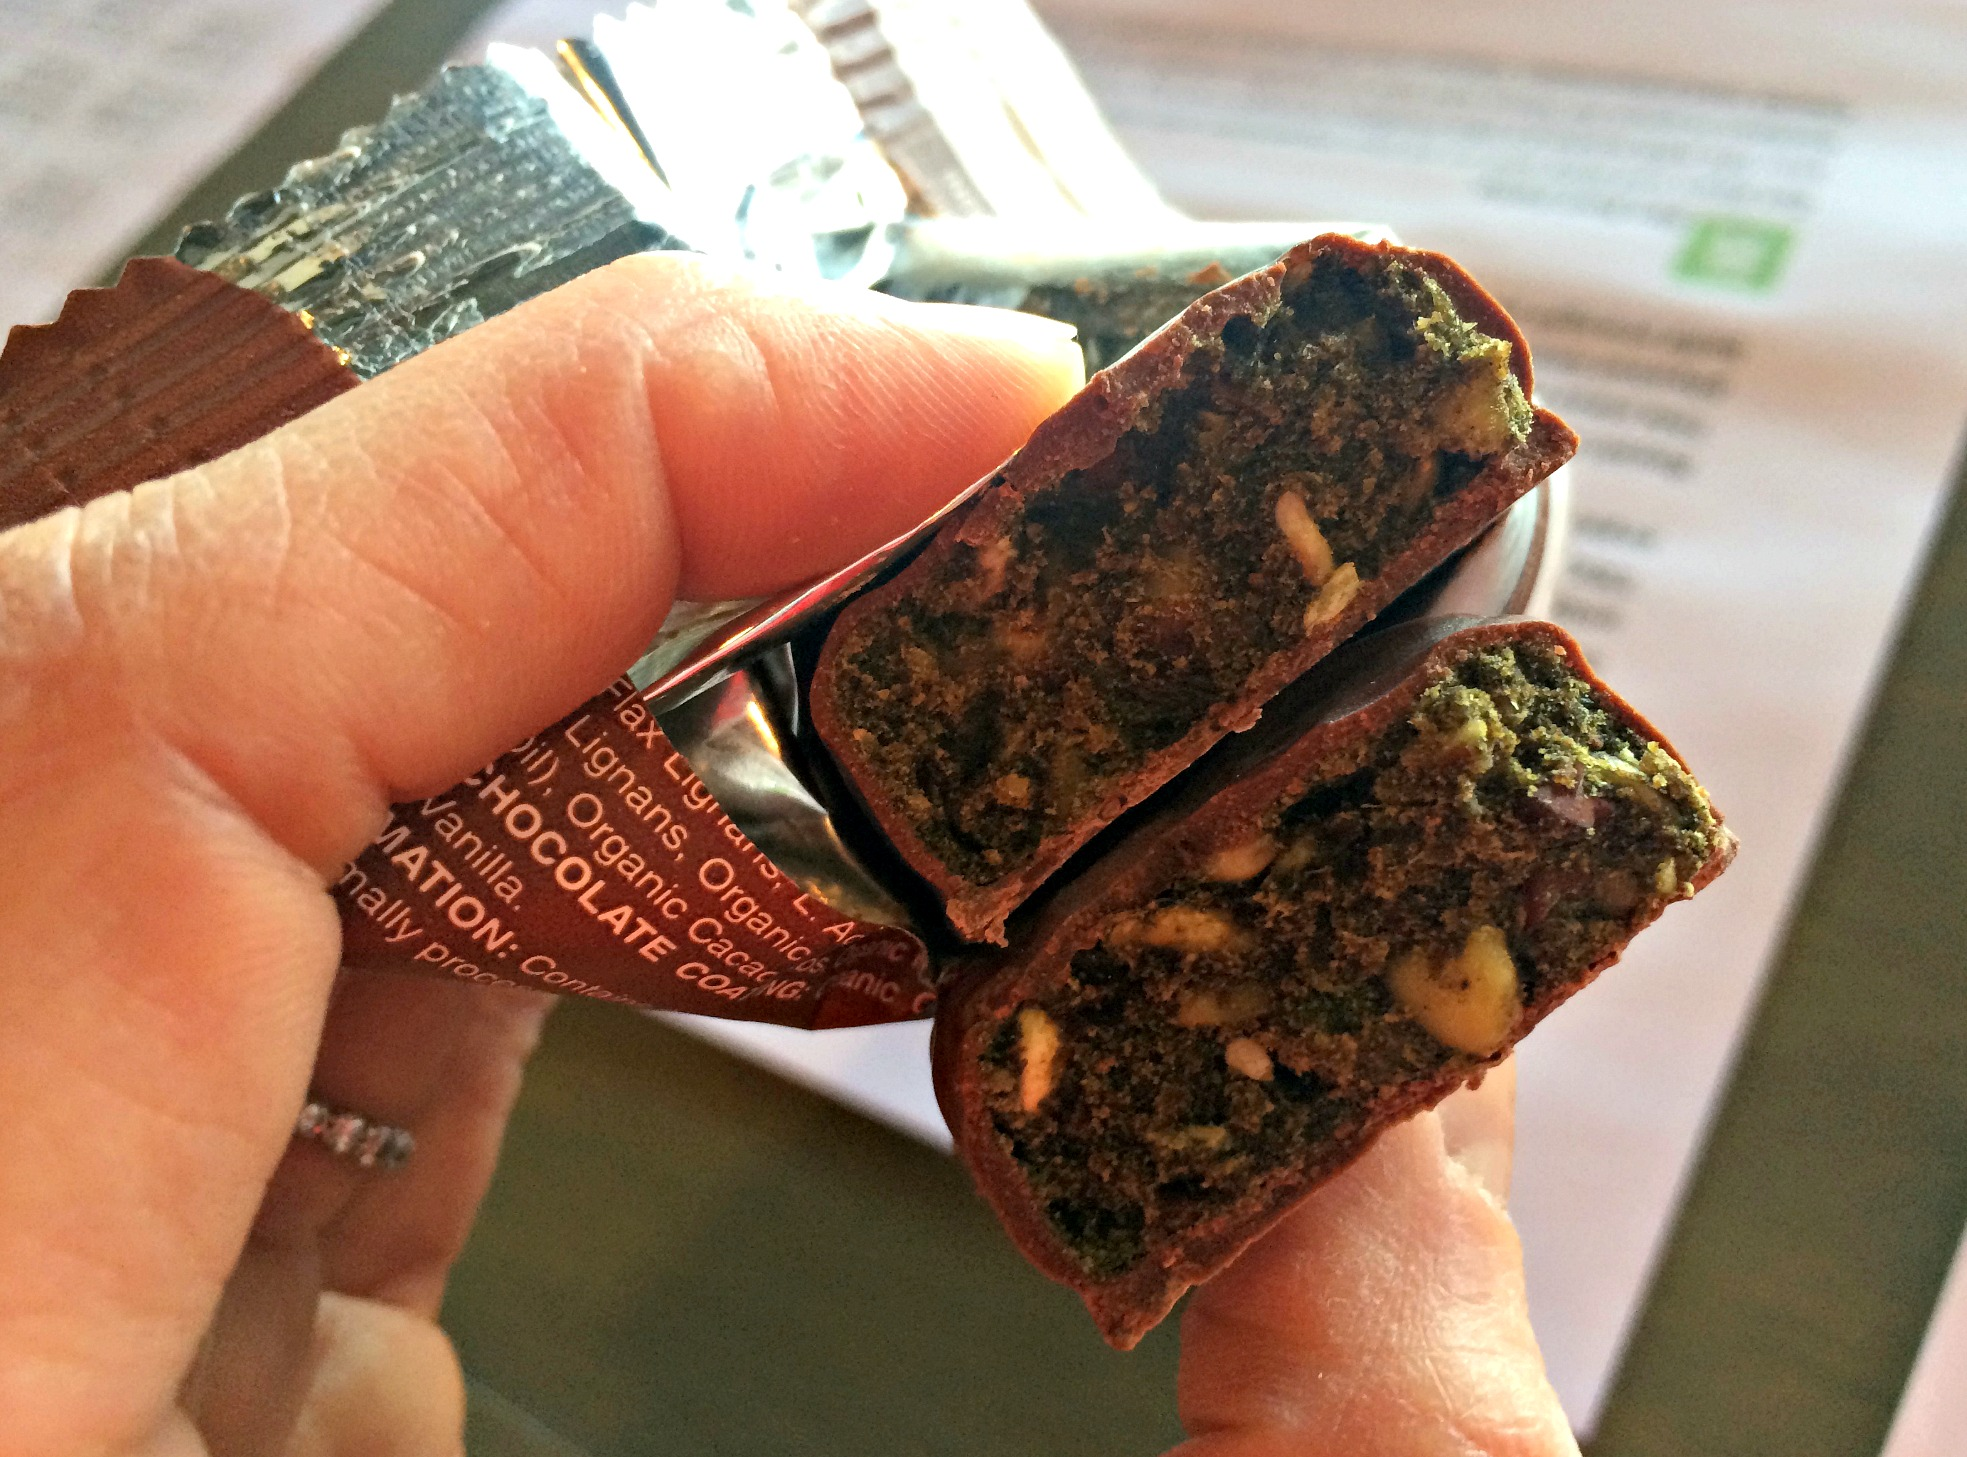 AmaZing Grass Chocolate Green Superfood Energy Bar